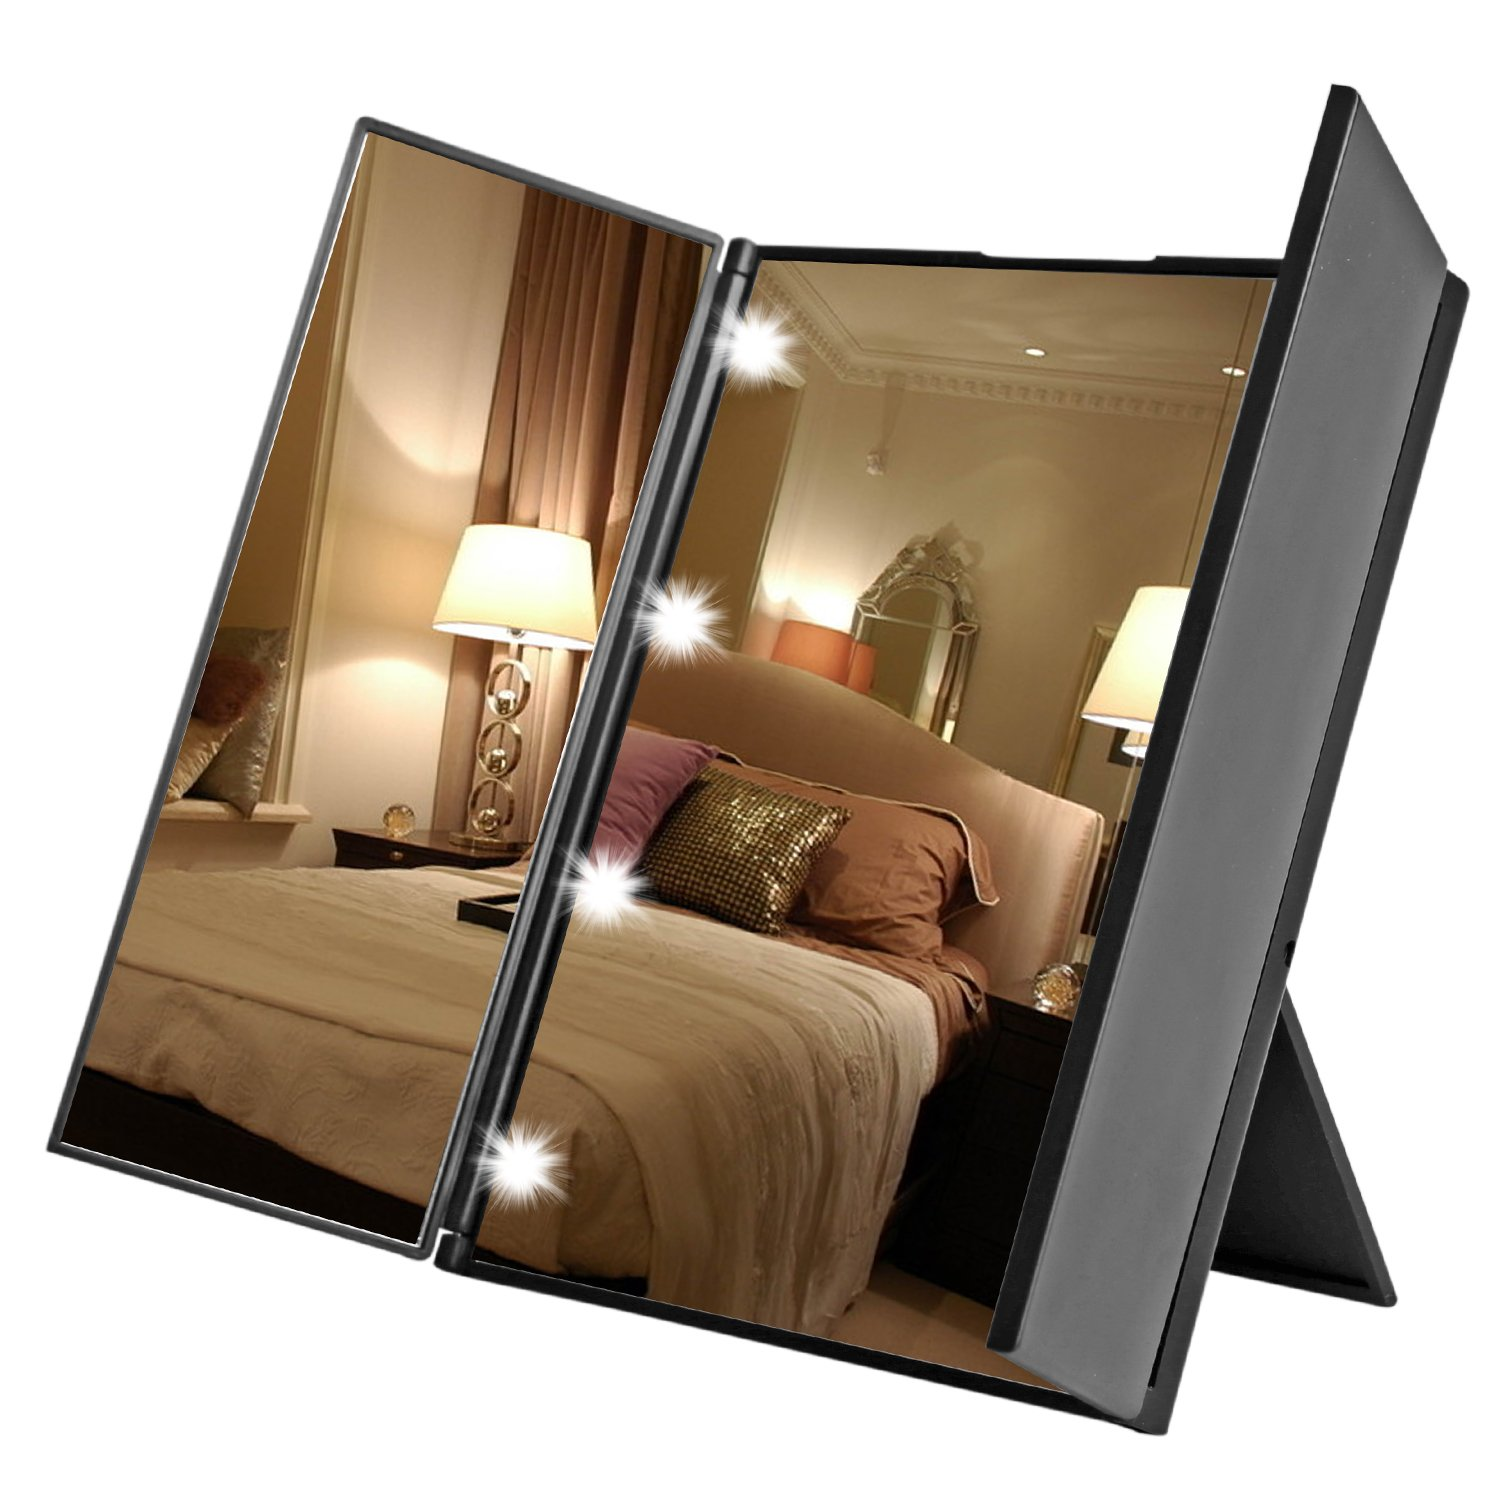 Foldable Make up Mirrors with LED Lights, BuySShow Tri-Fold Light Makeup Mirror Portable Vanity Mirror with light for Makeup Travel Mirror Makeup Mirror with Lights